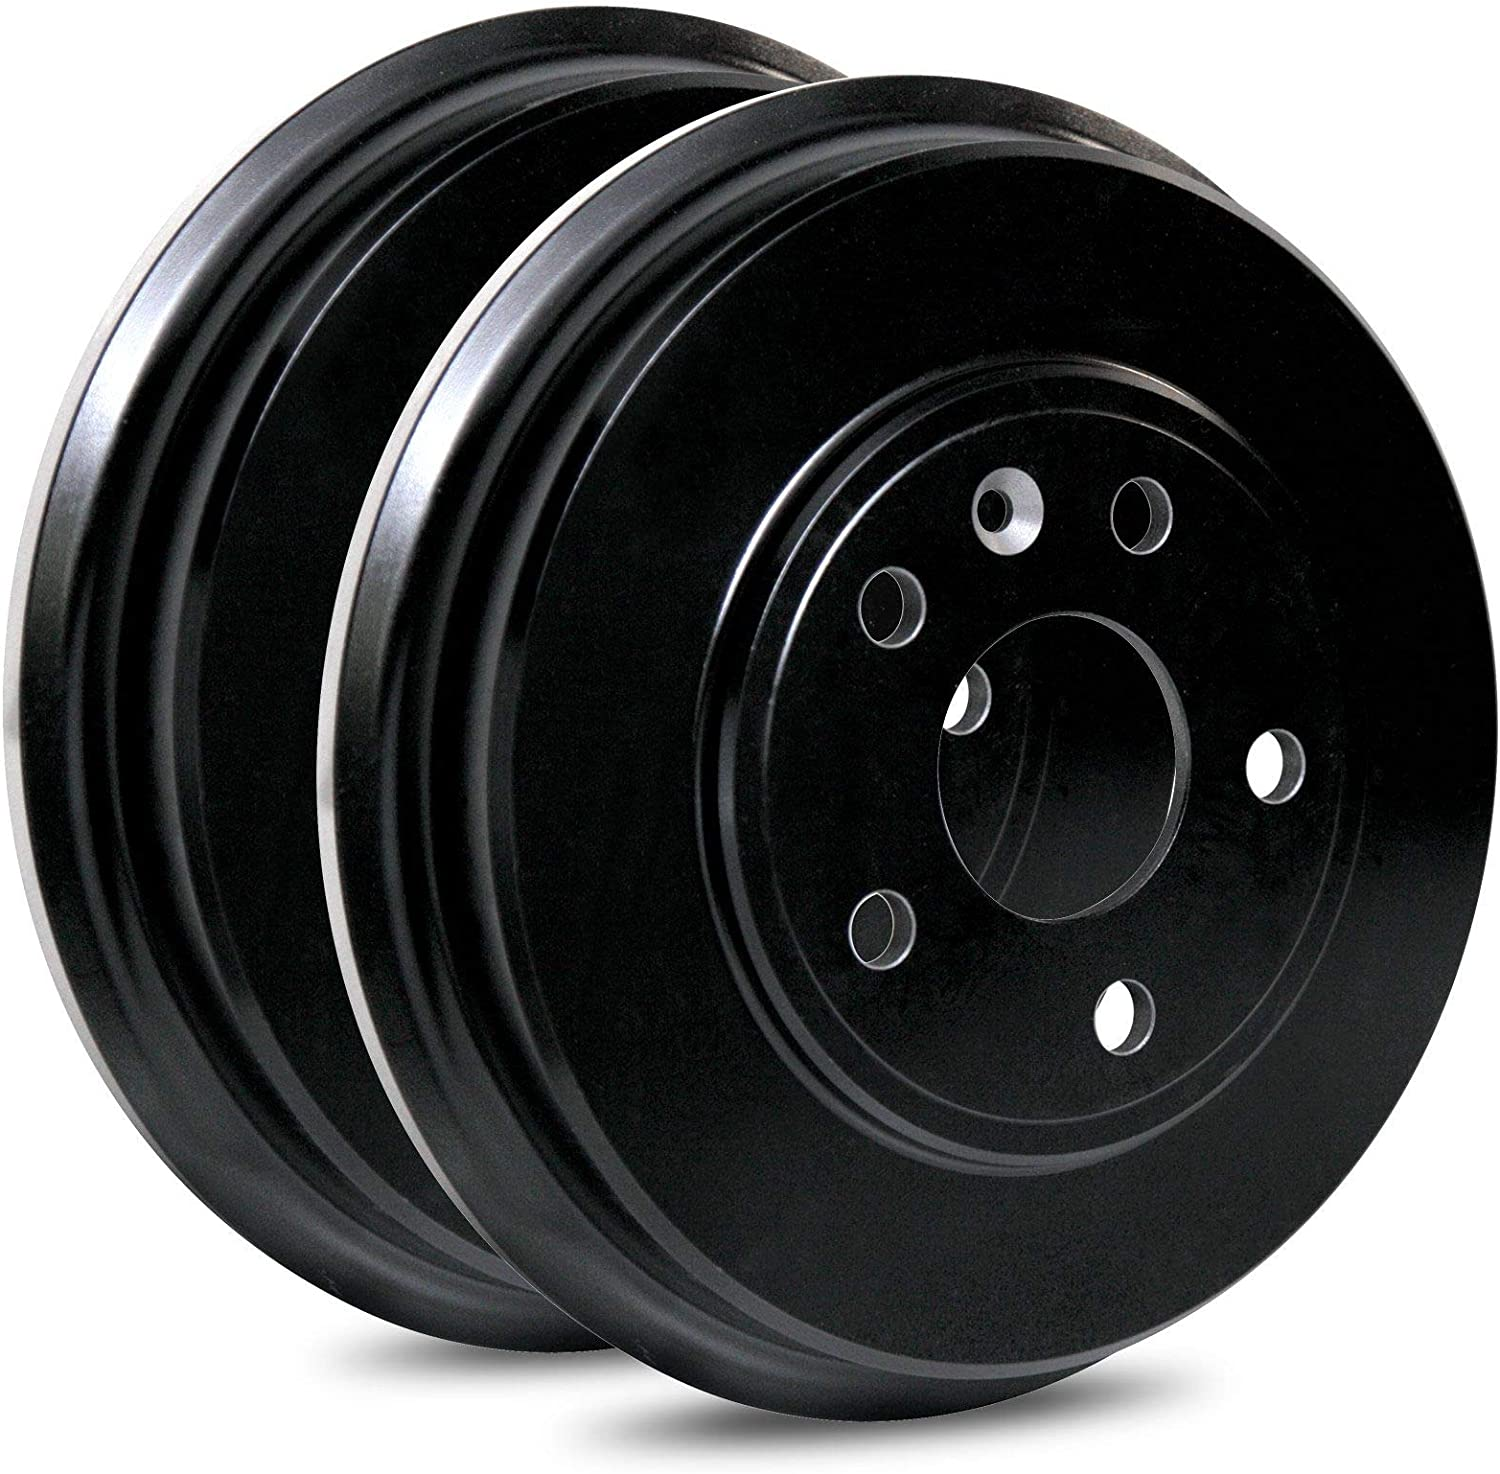 For 1996-2003 Toyota RAV4 R1 Brake Pair 2021 new safety Drums Concepts Rear